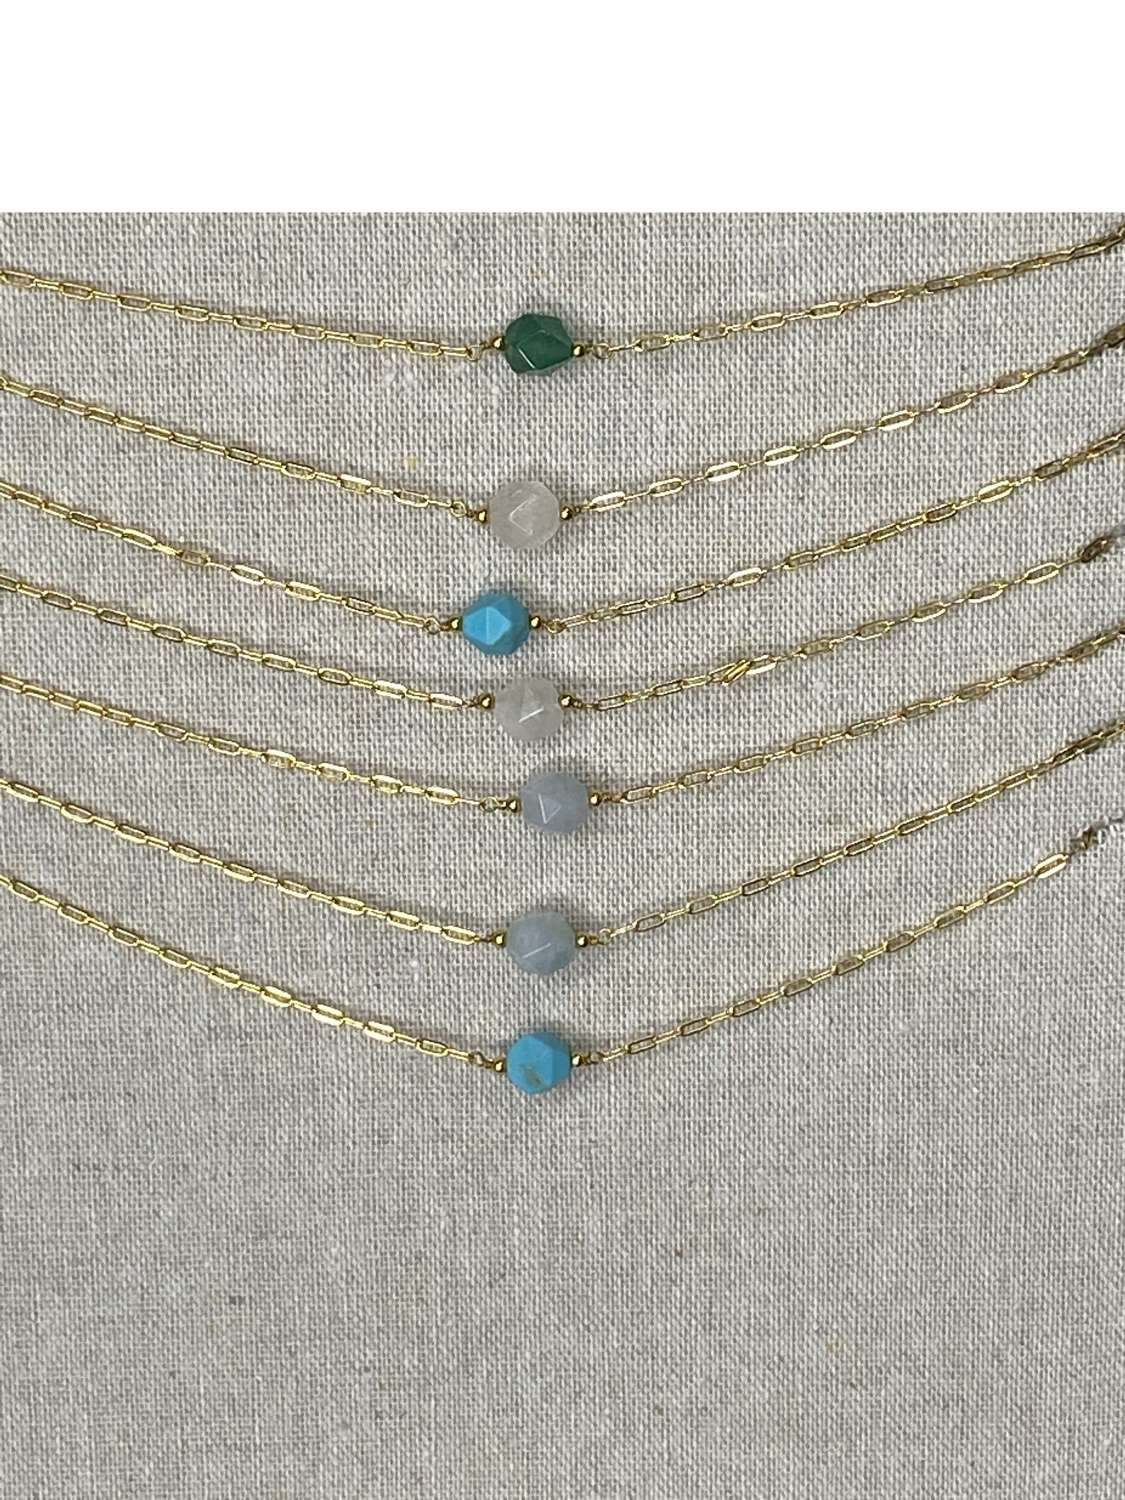 Gold (plated) chain necklace with coloured stone